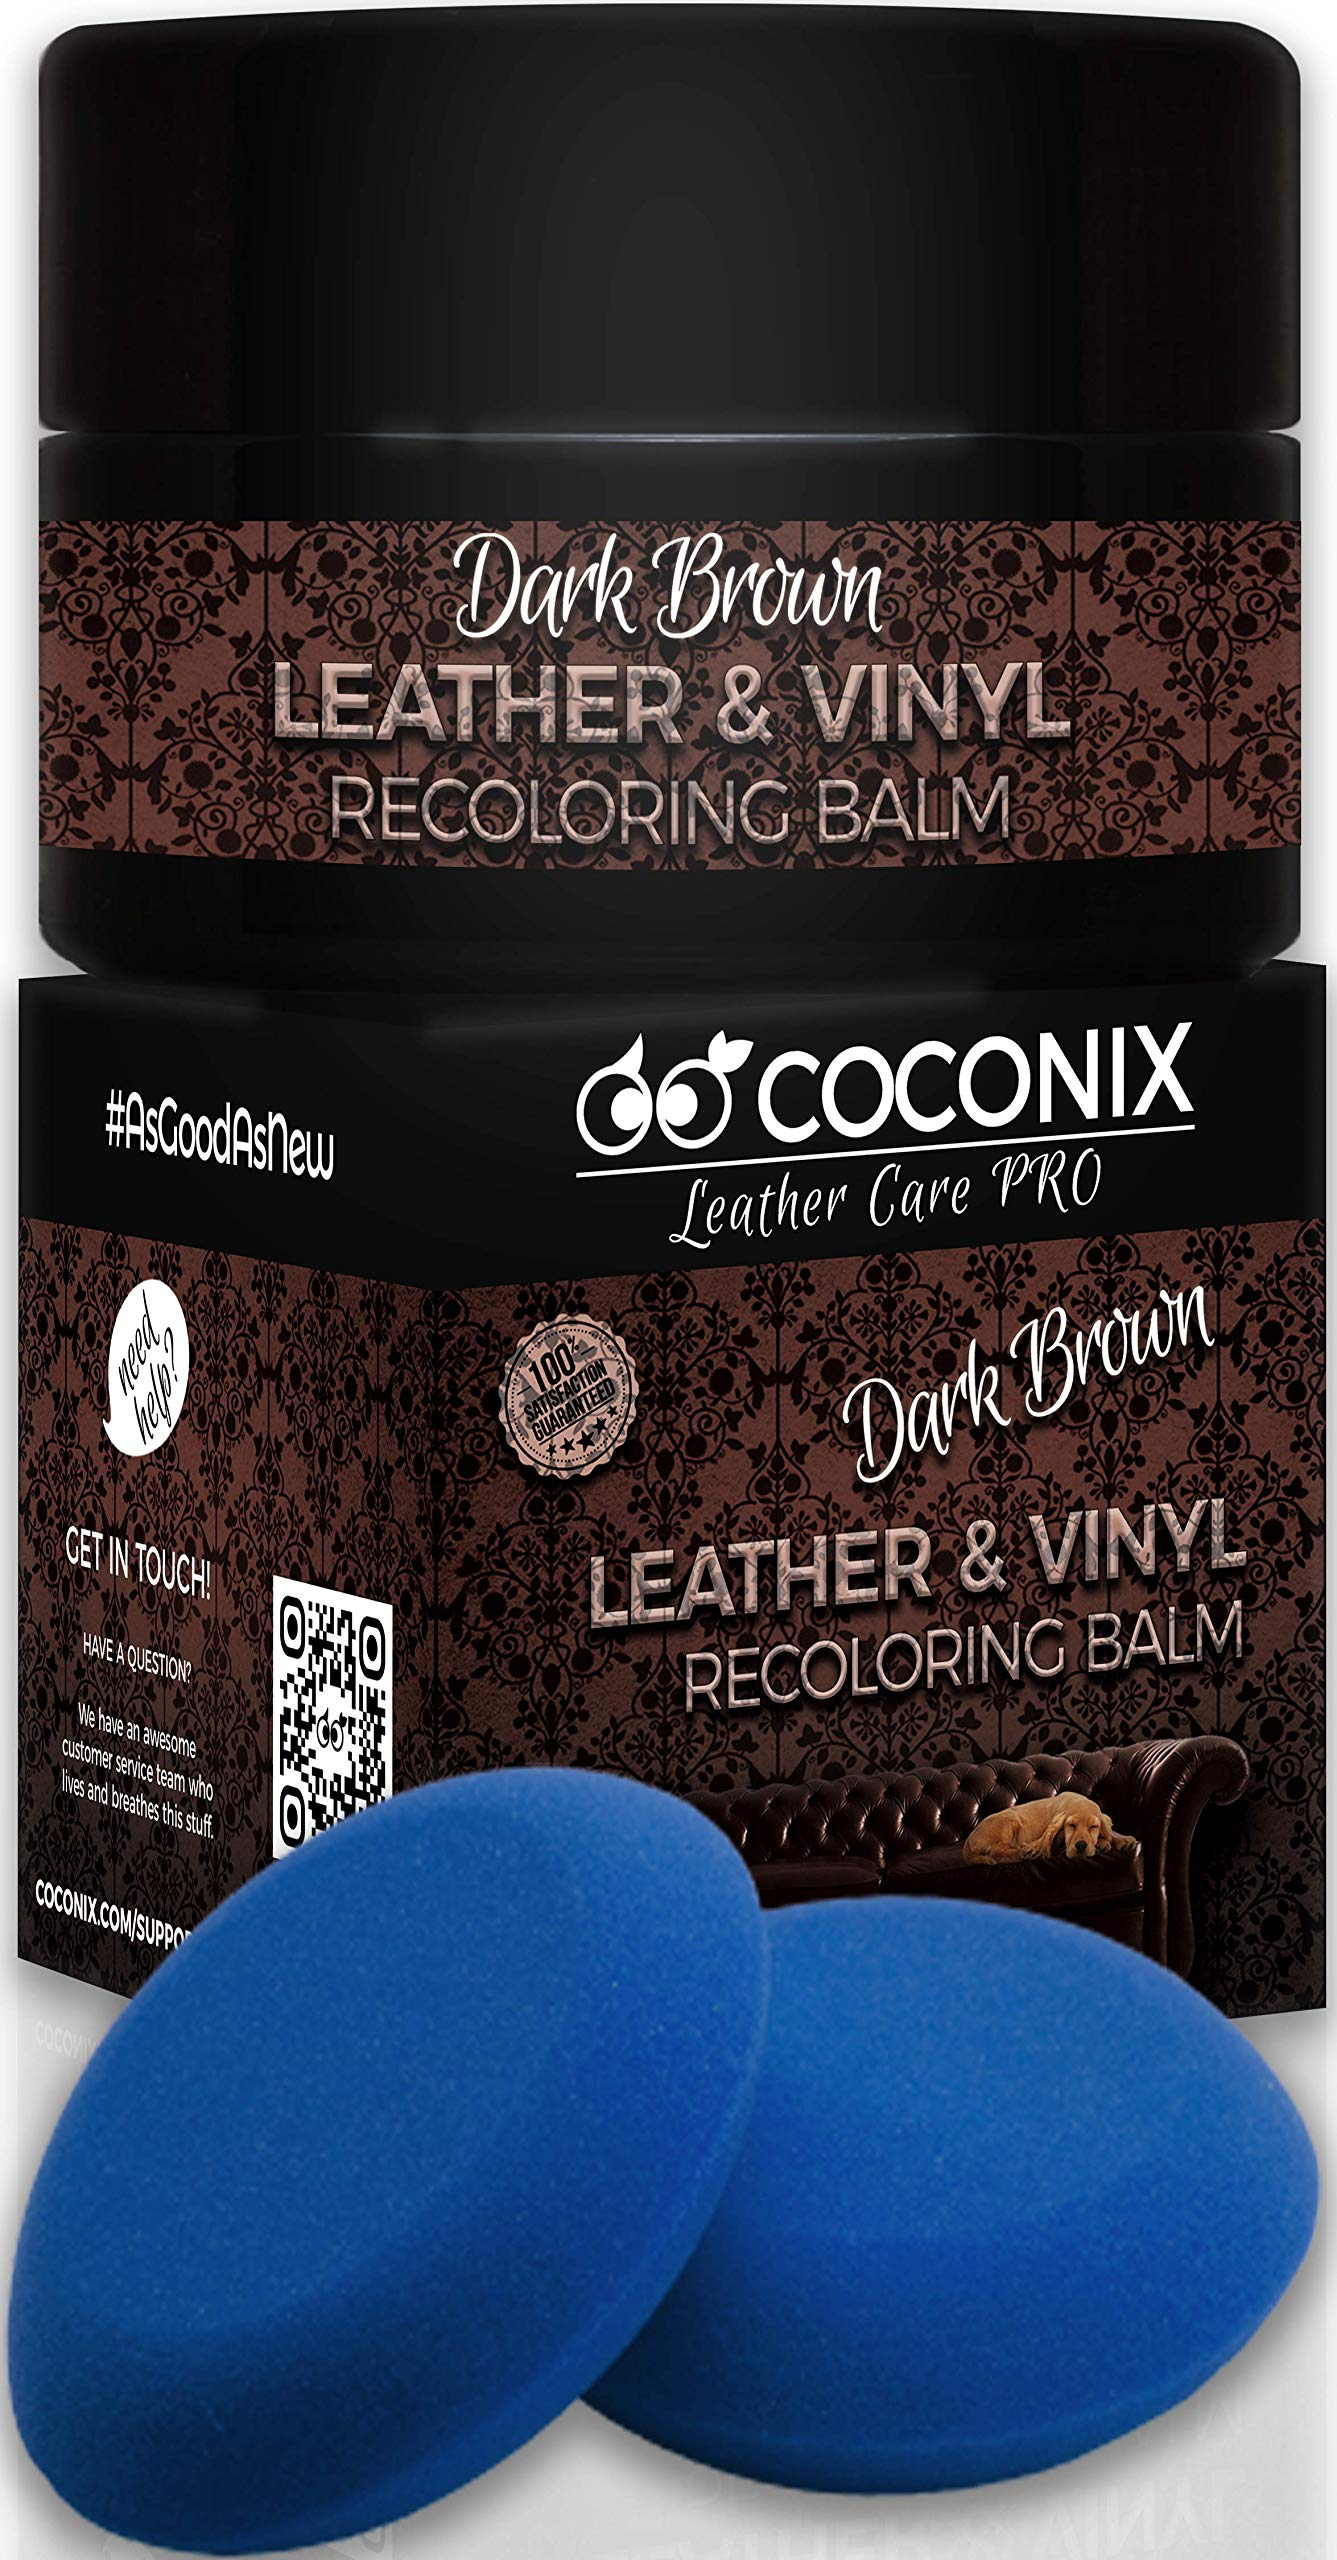 Upholstery or Jacket Fixes Cigarette Burn Holes Pattern Couch Tear or Rips Repairer of Your Car Seat Furniture Coconix Fabric and Carpet Repair Kit Super Easy Instructions to Match Any Color